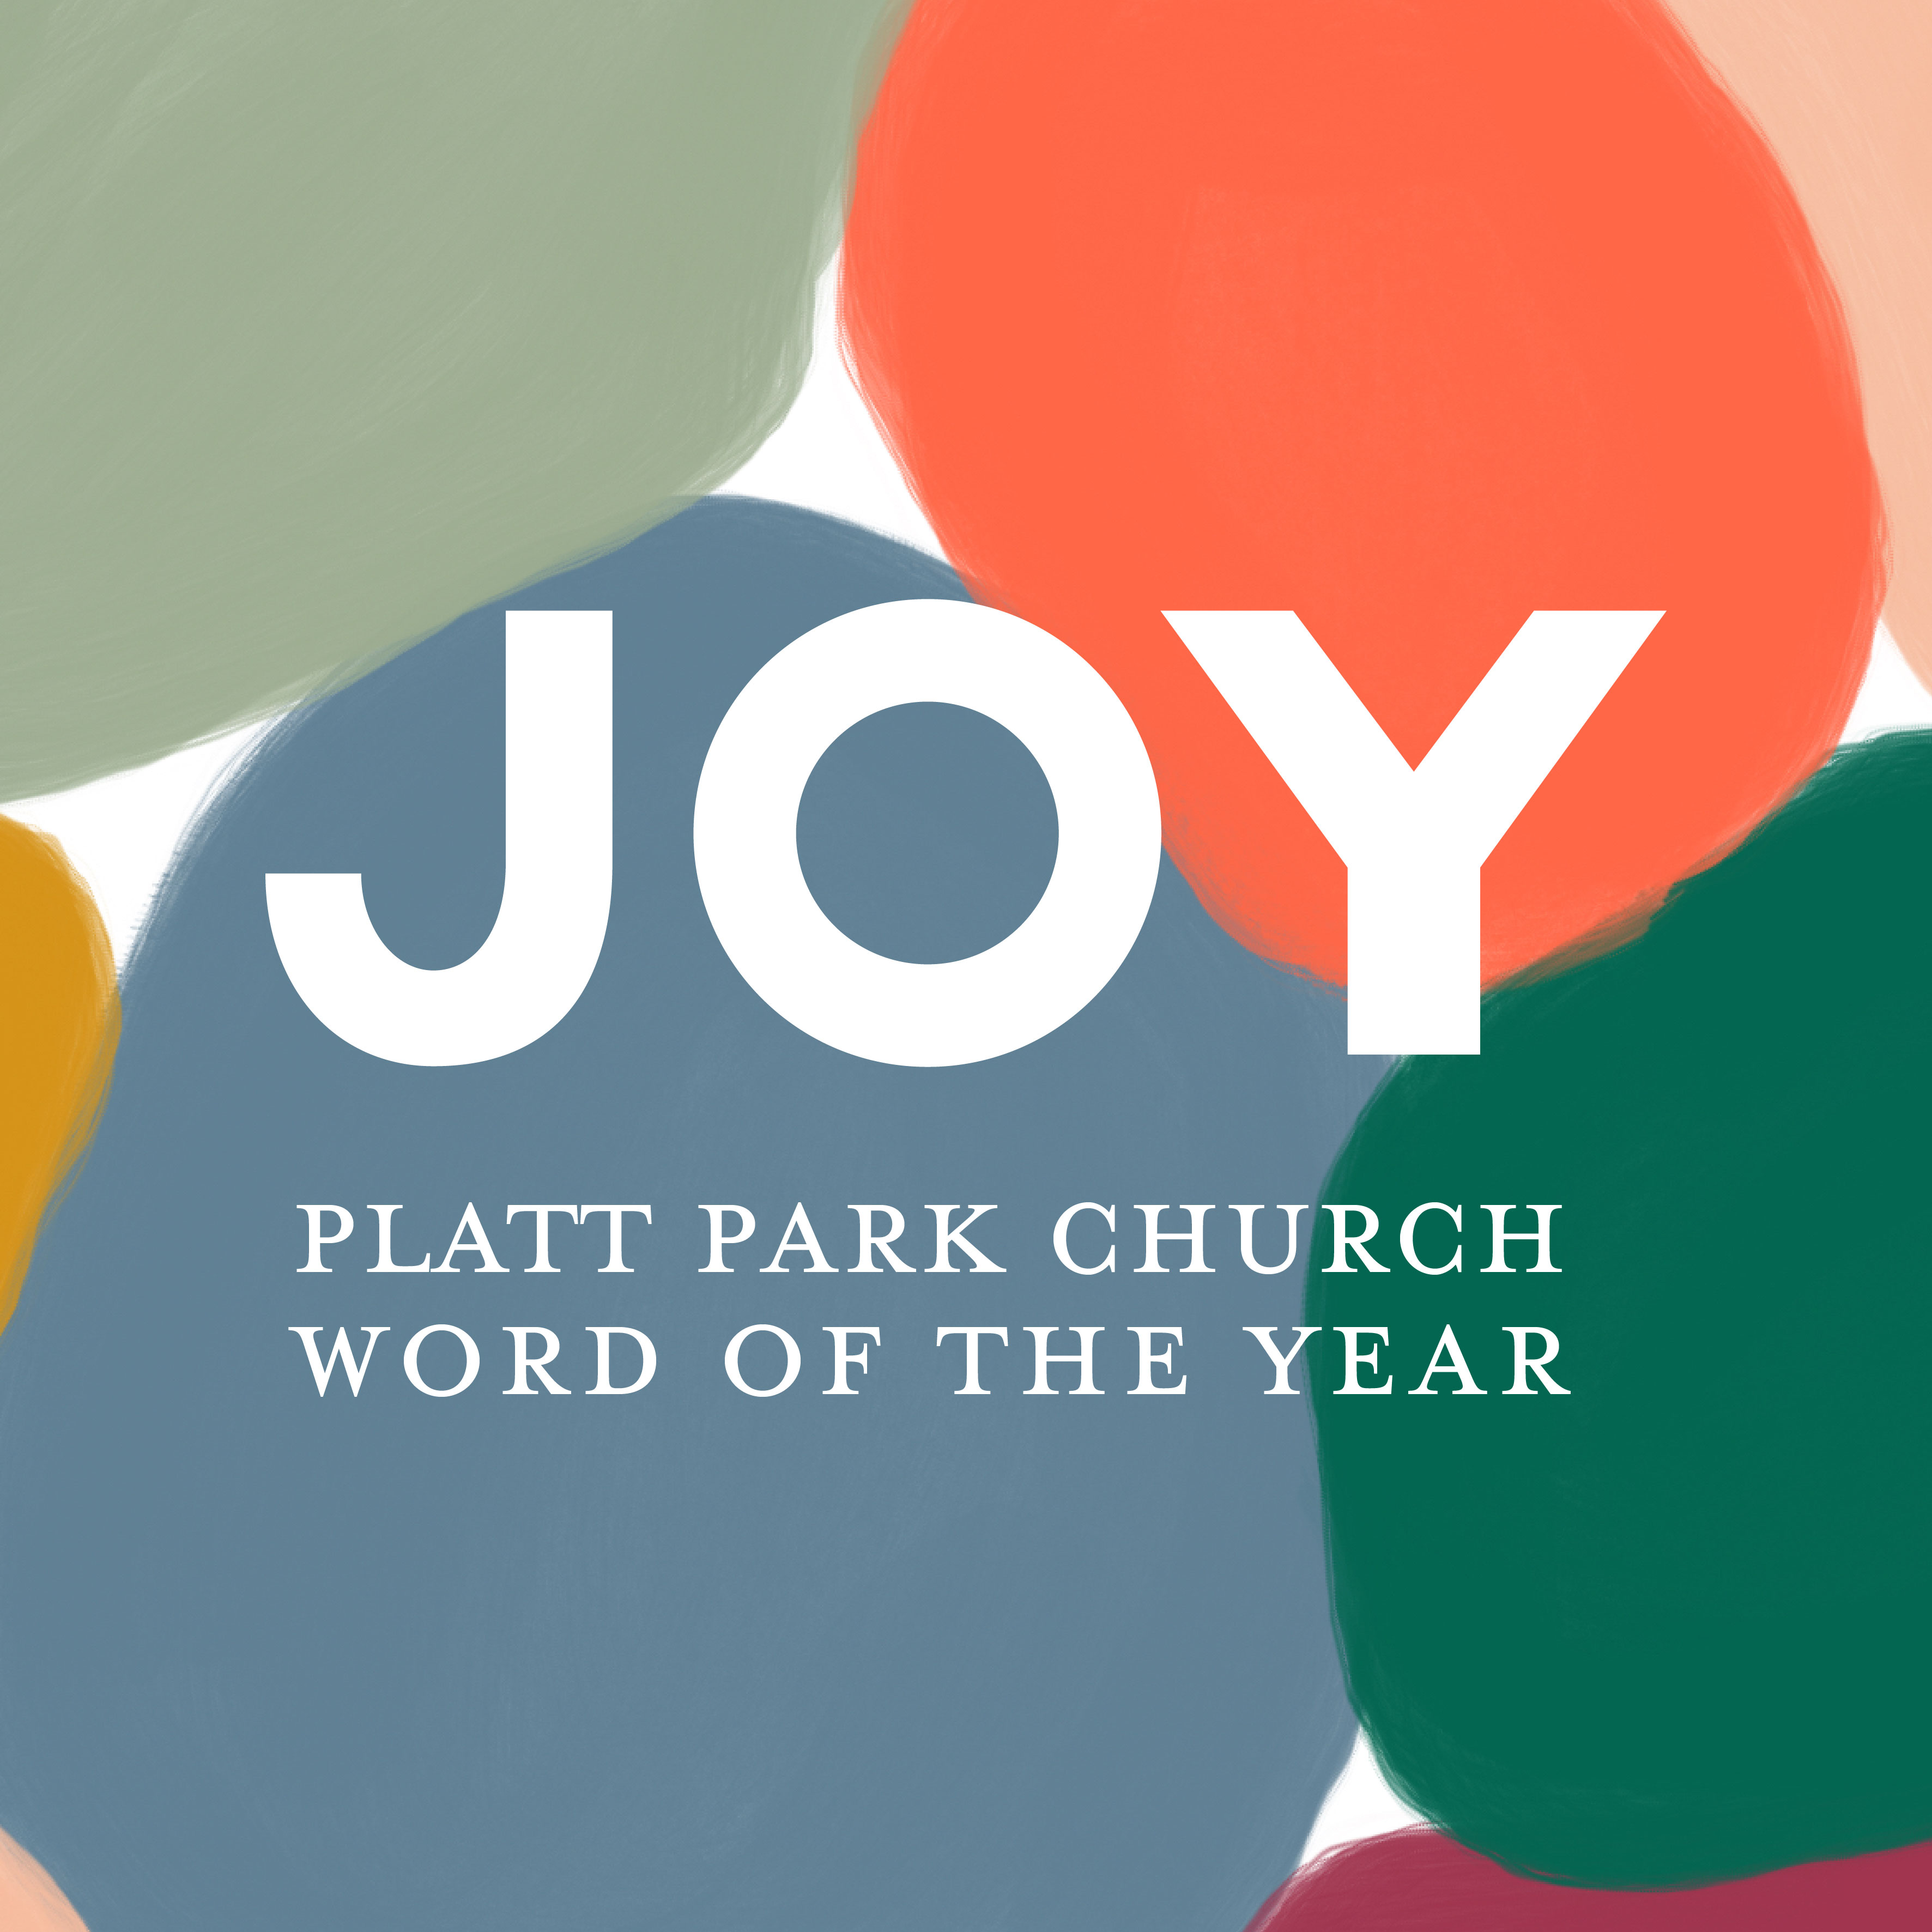 Joy: the fruit of rootedness